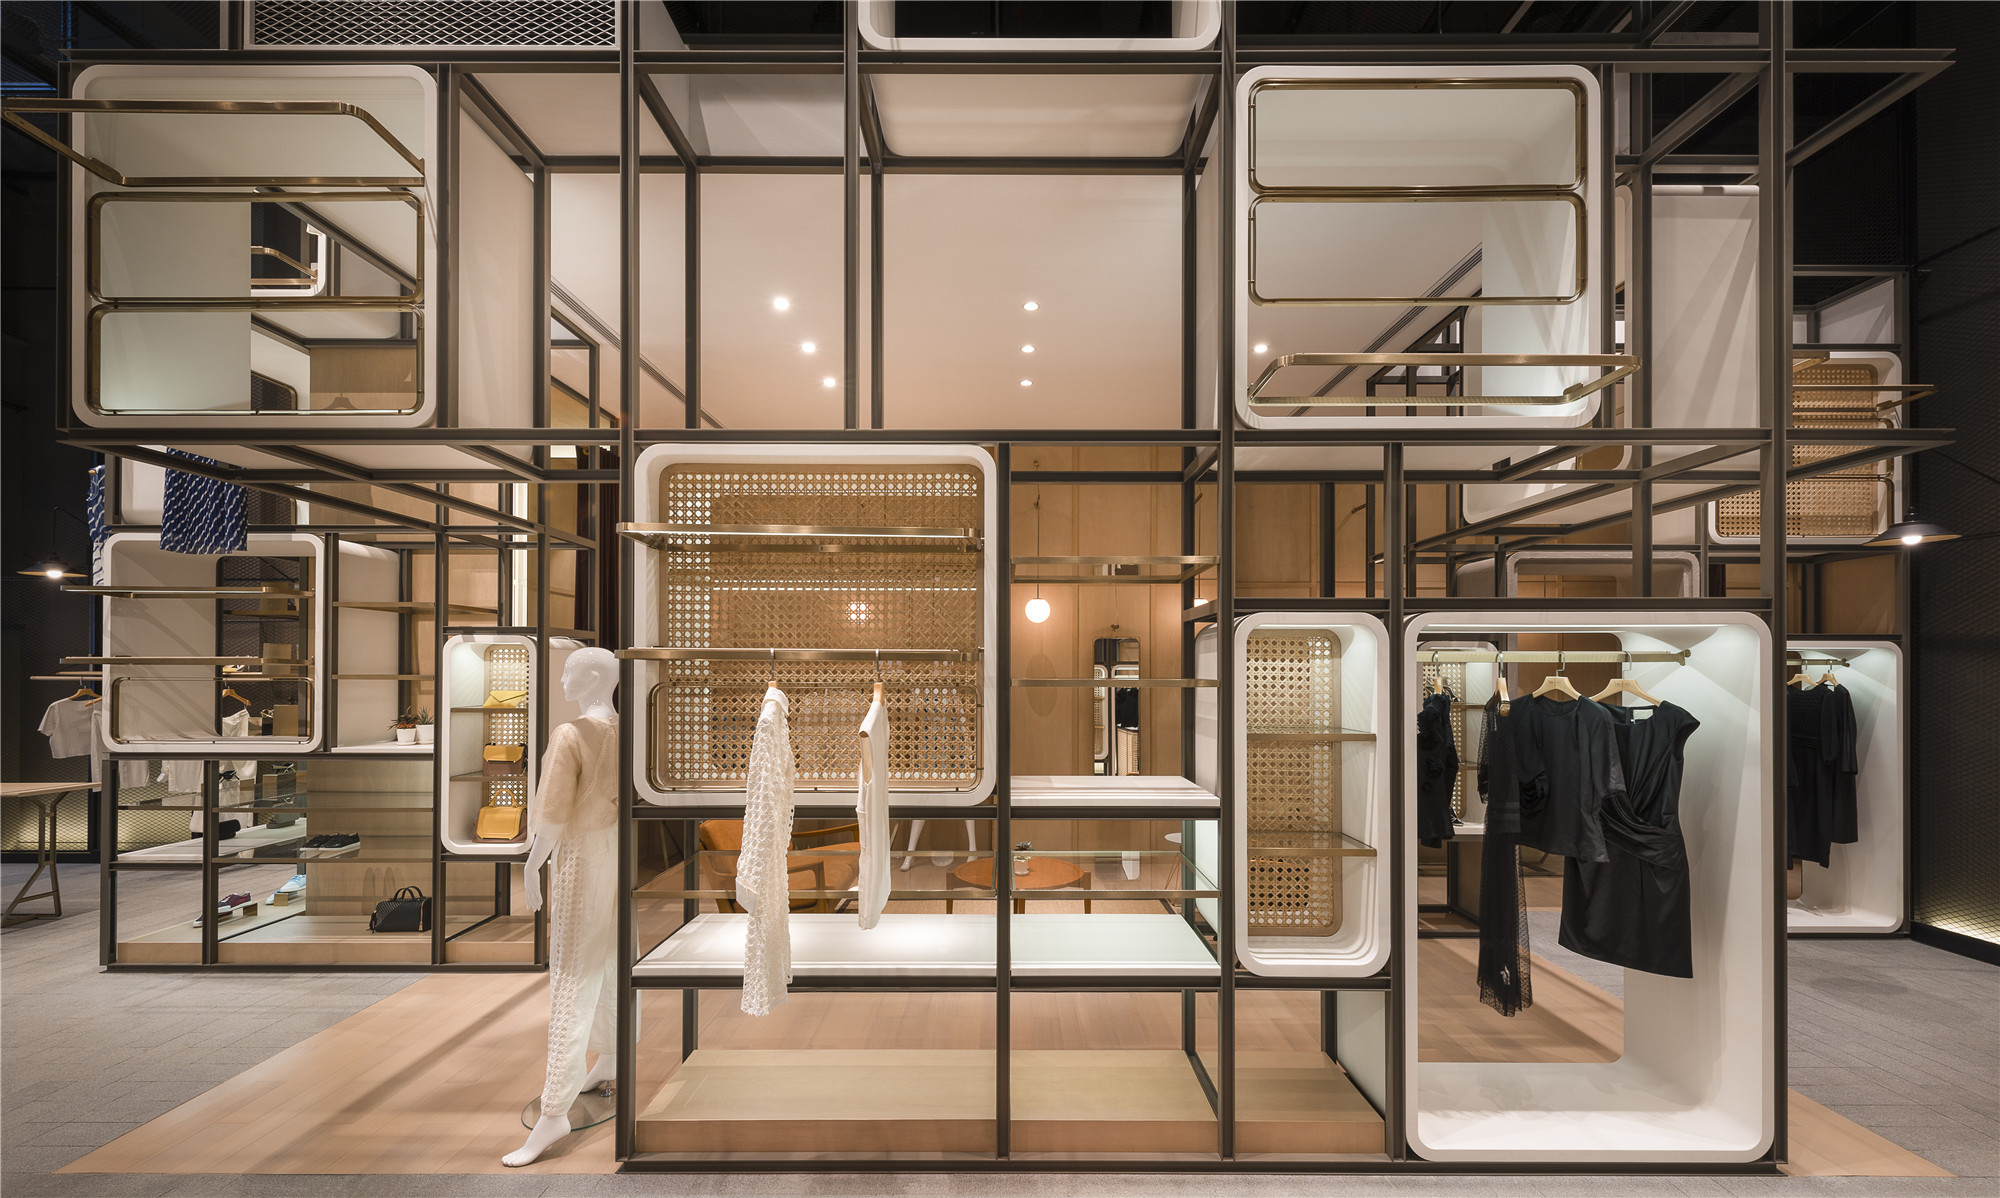 The modular lilong lukstudio archdaily for Fashion retail interior design